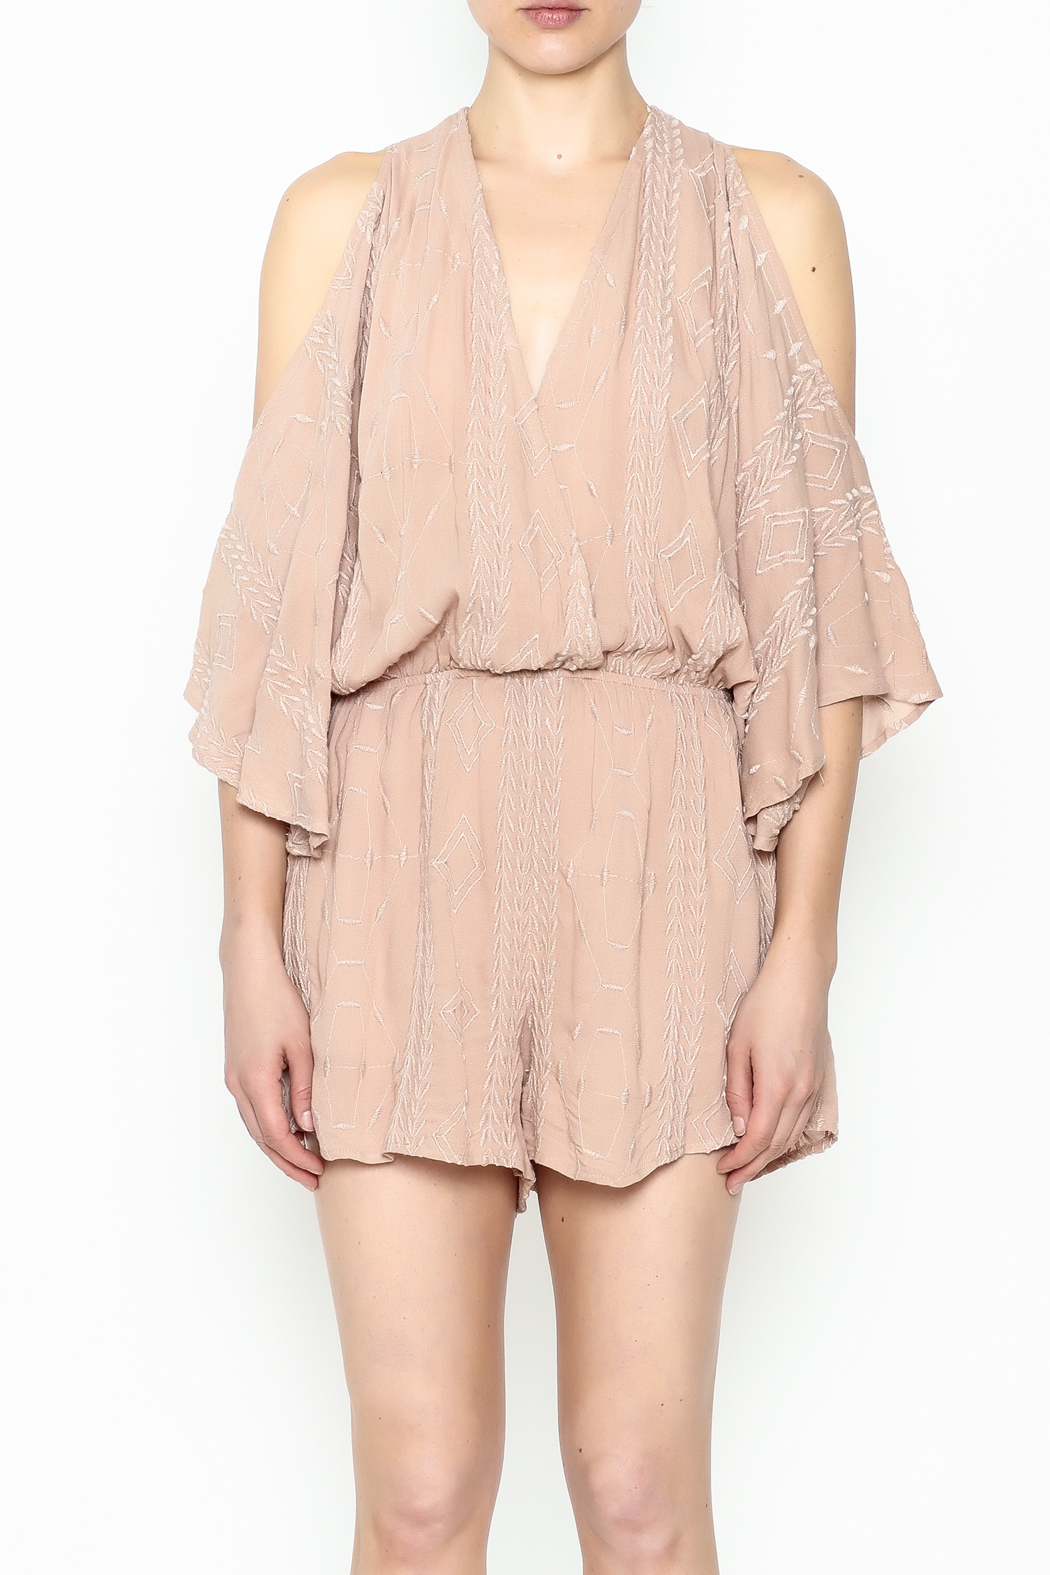 Audrey 3+1 Blush Embroidered Romper - Front Full Image